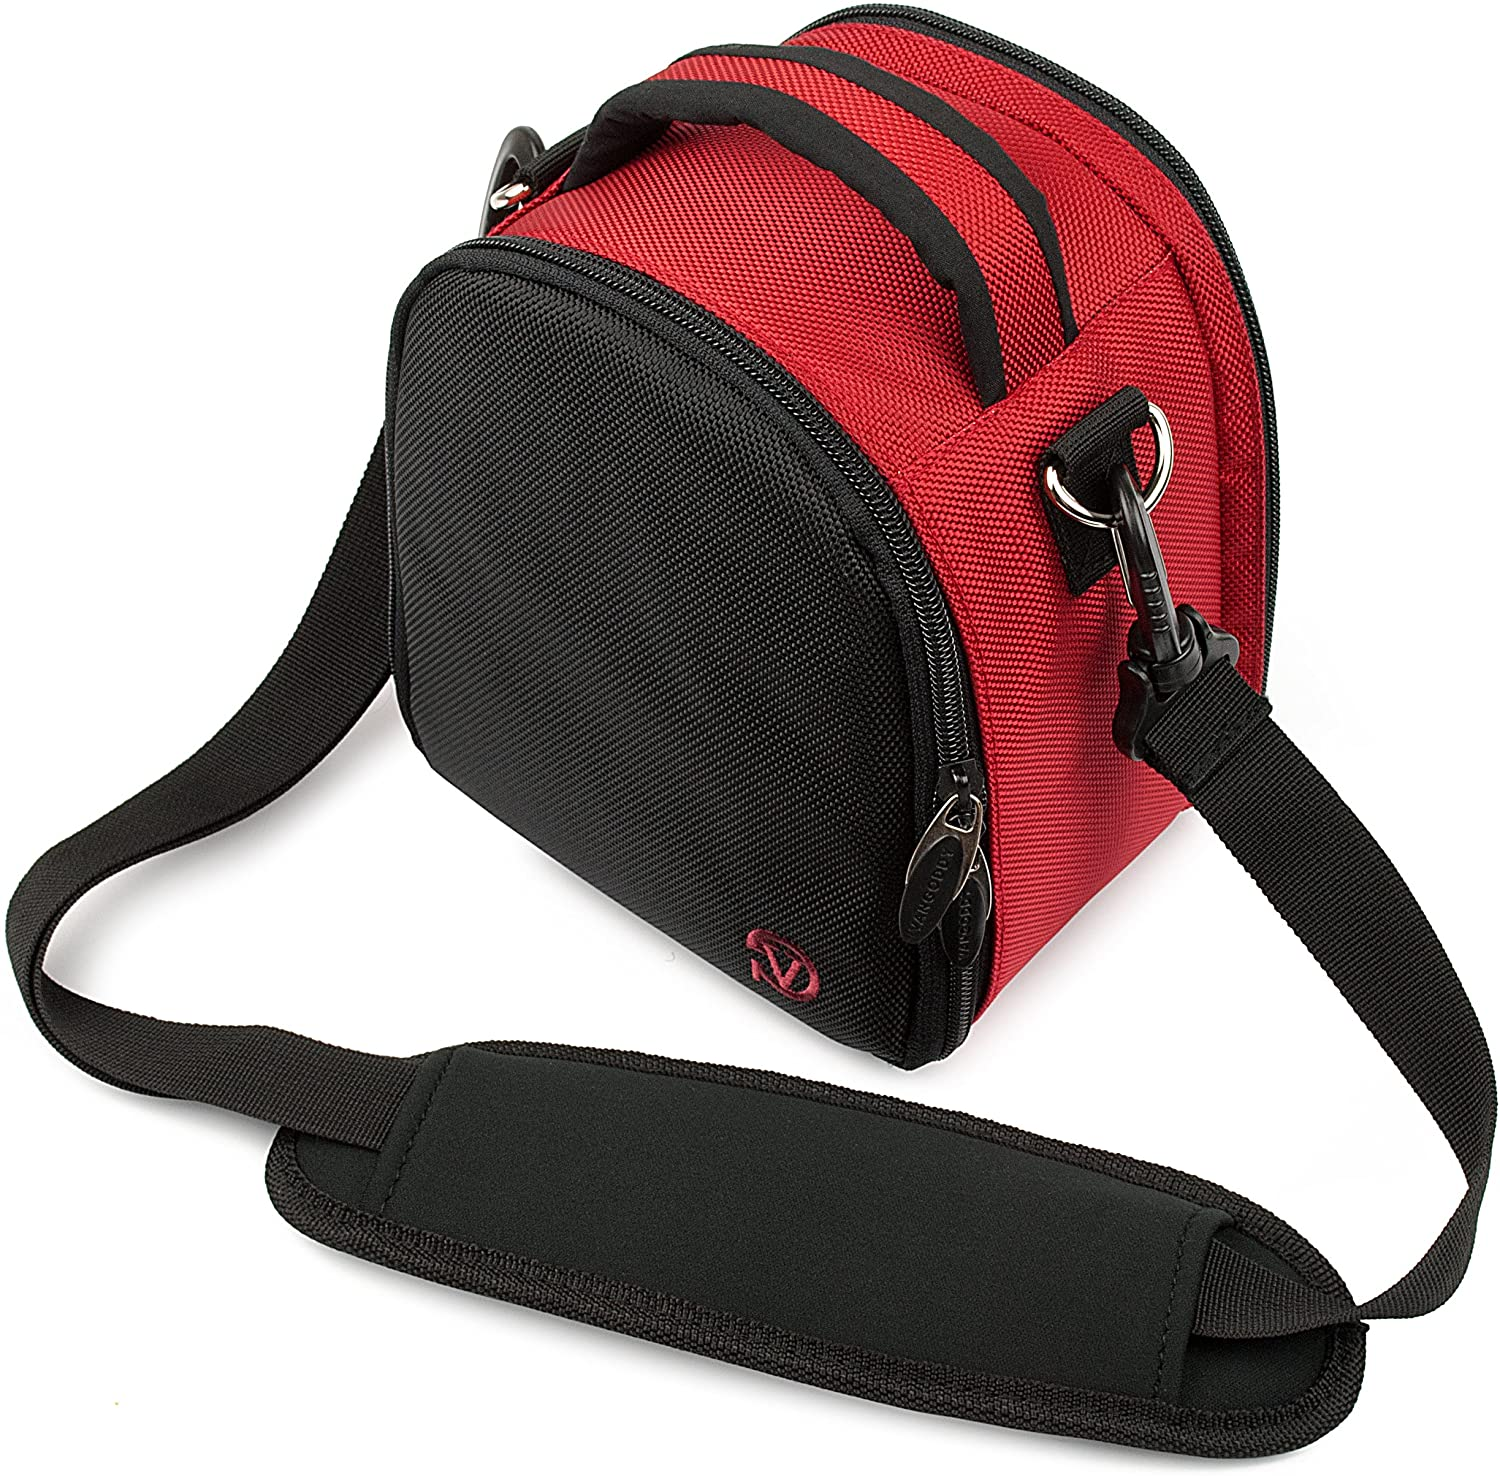 Water Resistant Protective Camera Lens Red Bag with Shoulder Strap for Sigma DP0 DP1 DP2 DP3 Quattro SD1 Merrill